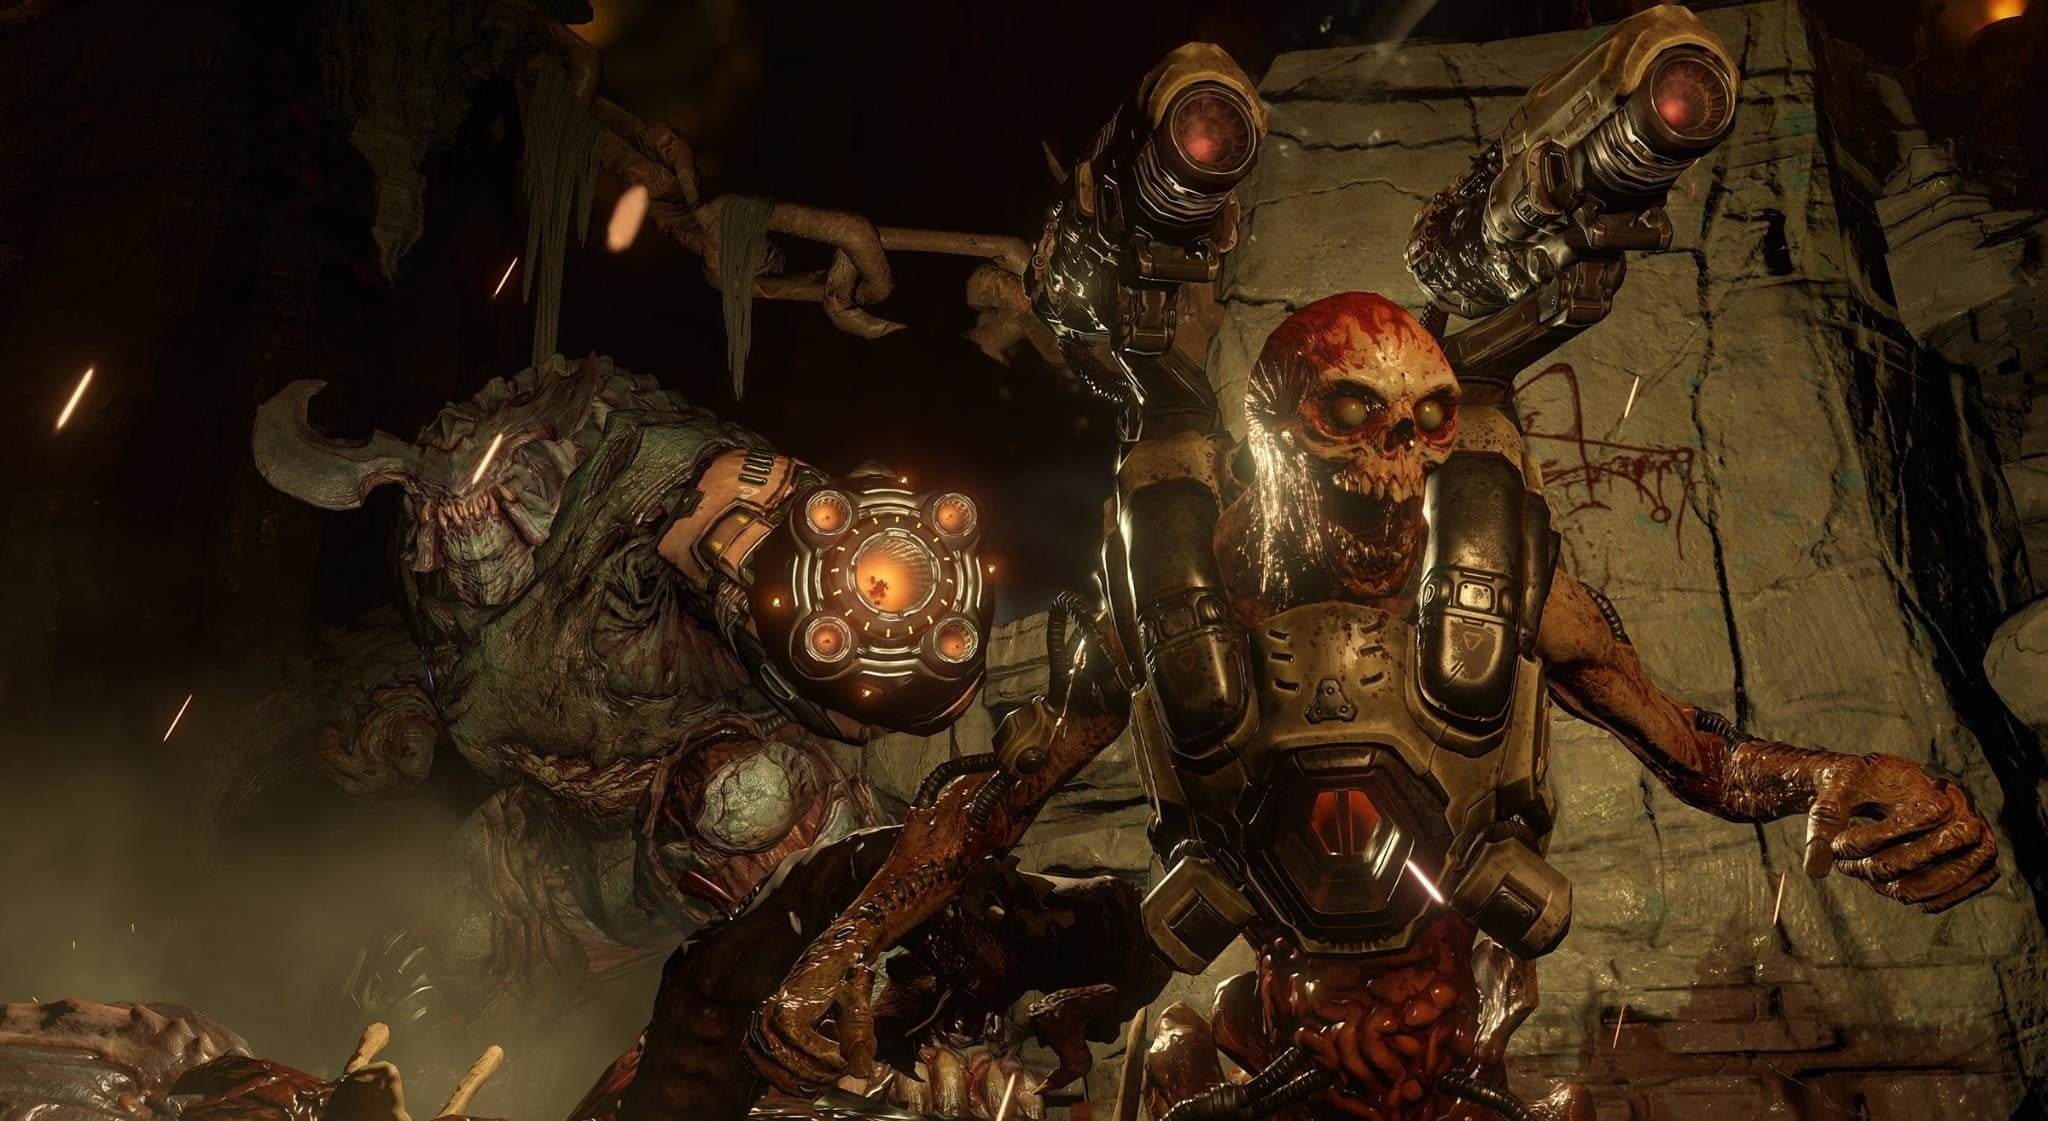 Doom 2016 put a new spin on classic monsters like the Mancubus (left, shown in his cybernetic incarnation) and the Revenant.